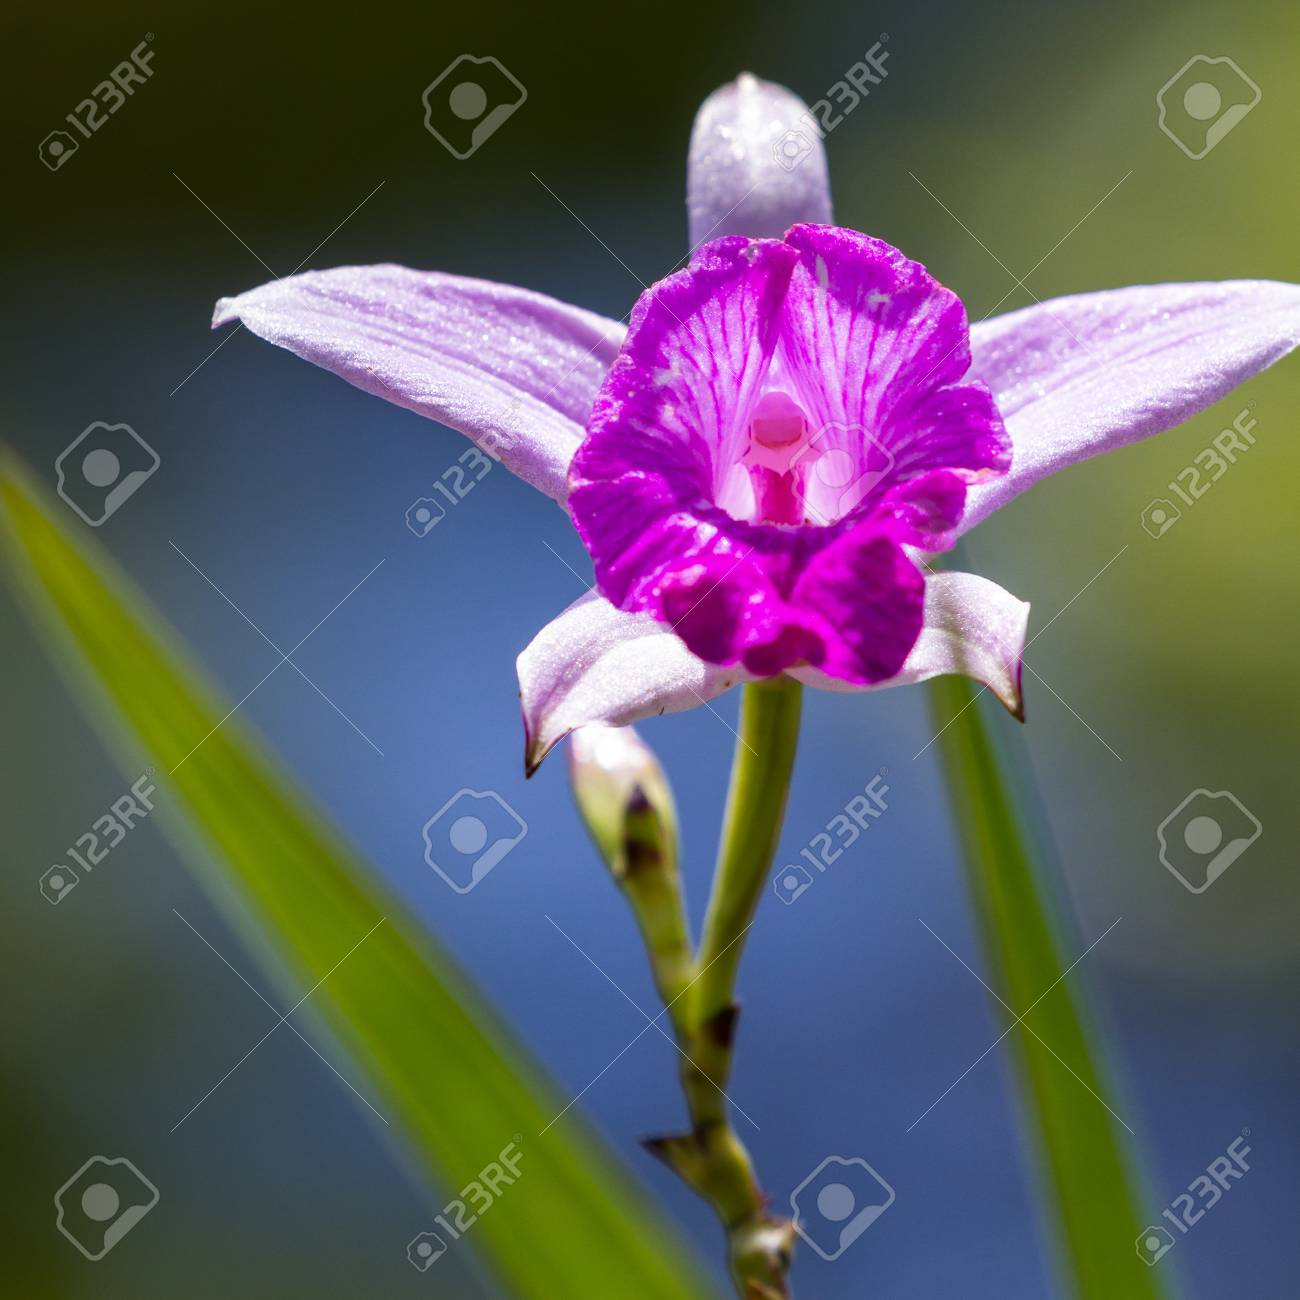 Close Up Of A Beautiful Bamboo Orchid With Soft Purple Petals